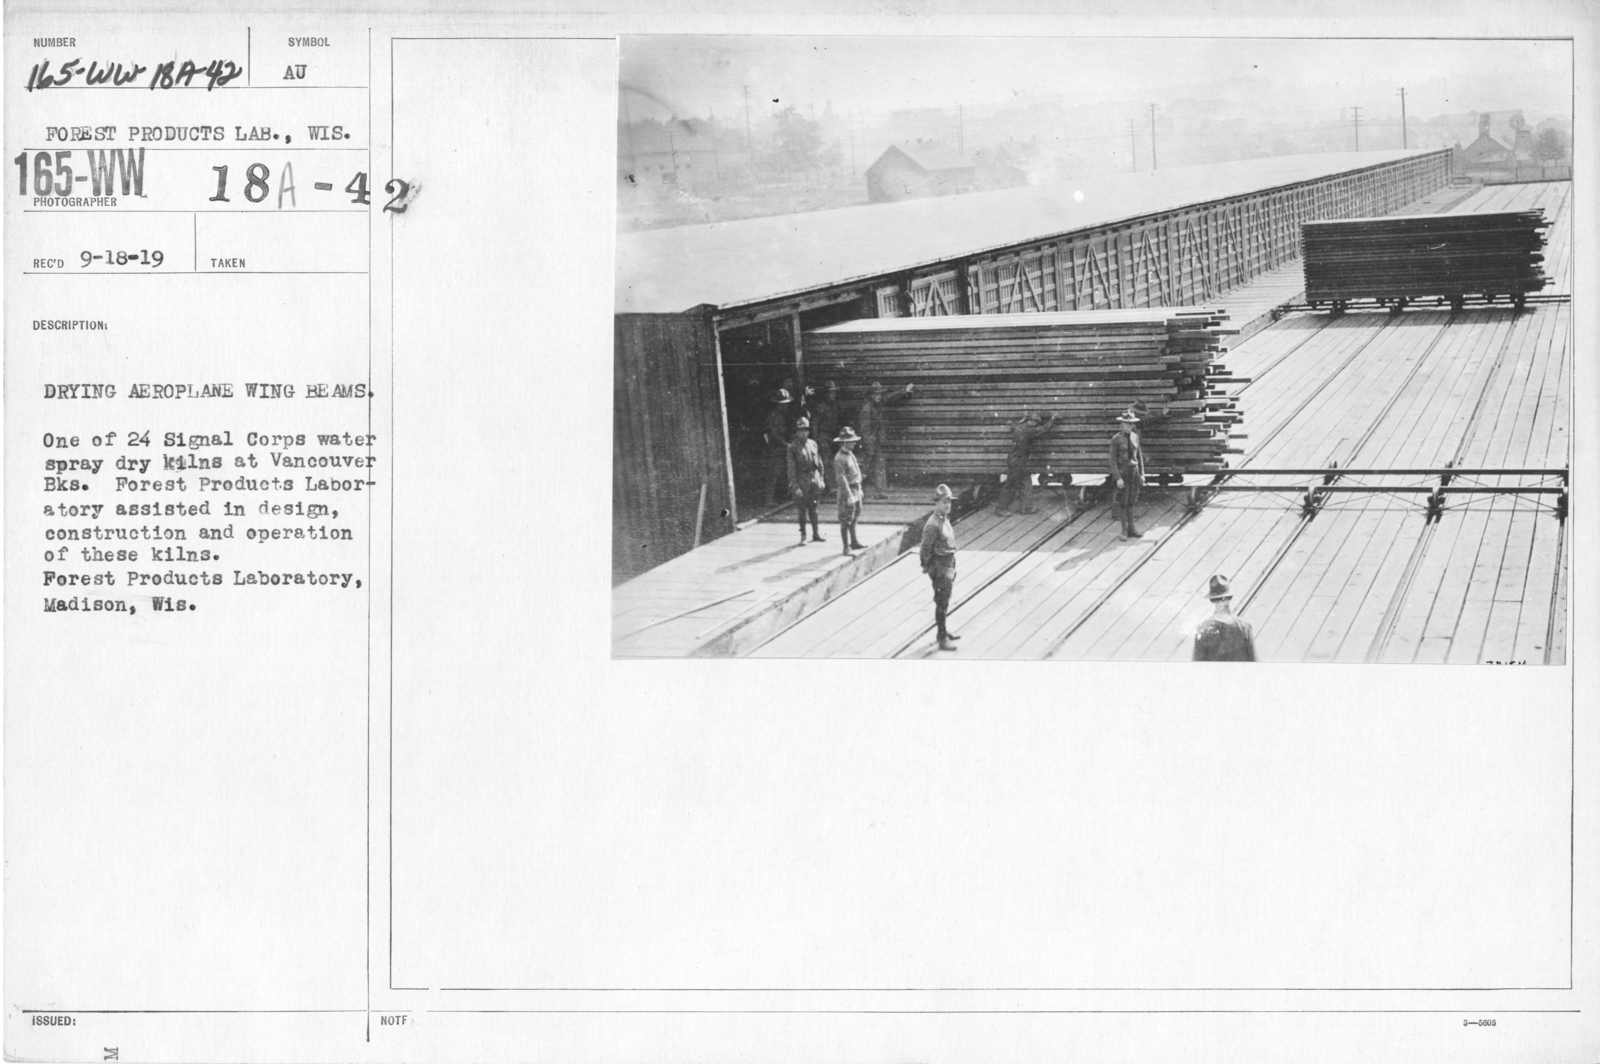 Airplanes - Wings - Drying aeroplane wing beams. One of 24 Signal Corps water spray dry kilns at Vancouver Bks. Forest Products Laboratory assisted in design, construction and operation of these kilns. Forest Products Laboratory, Madison, Wis